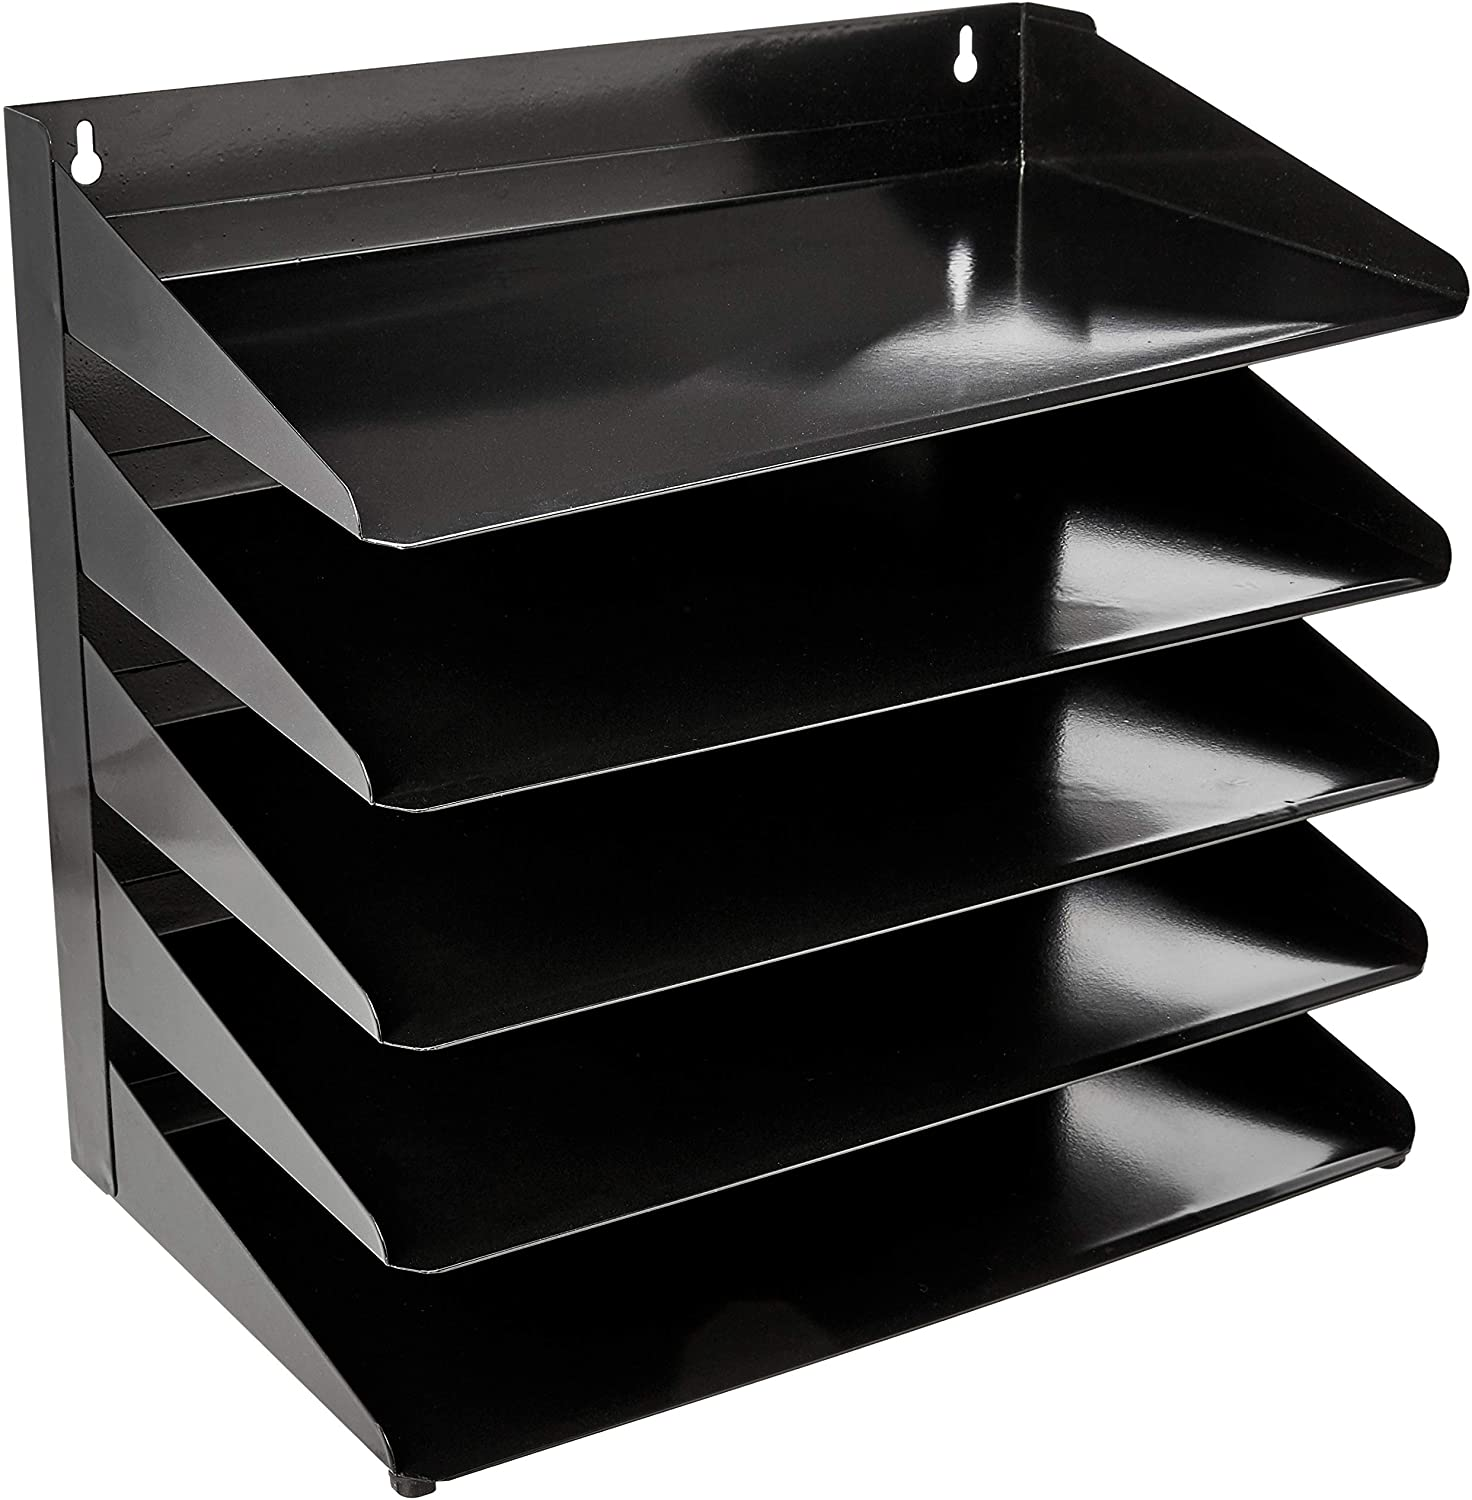 "AmazonBasics 5 Tier Metal Office Document Organizer Tray, 13"" x 9"" x 13"""